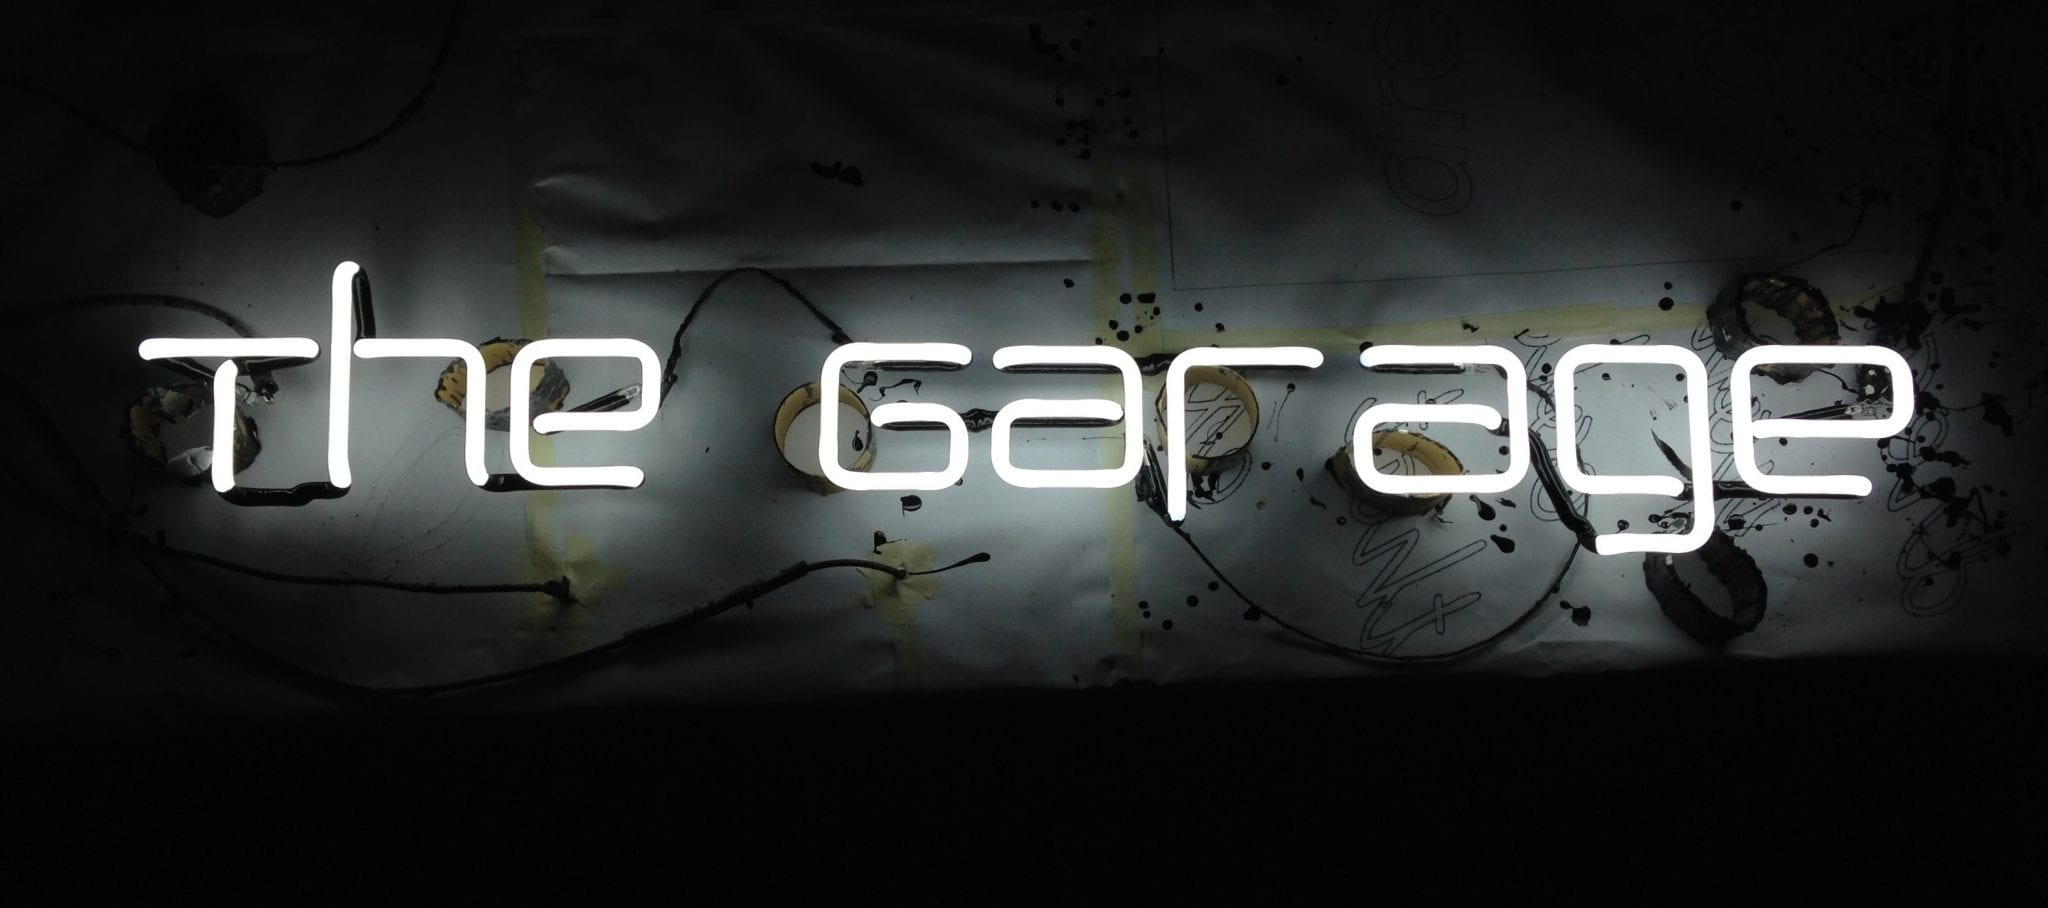 The Garage neon sign